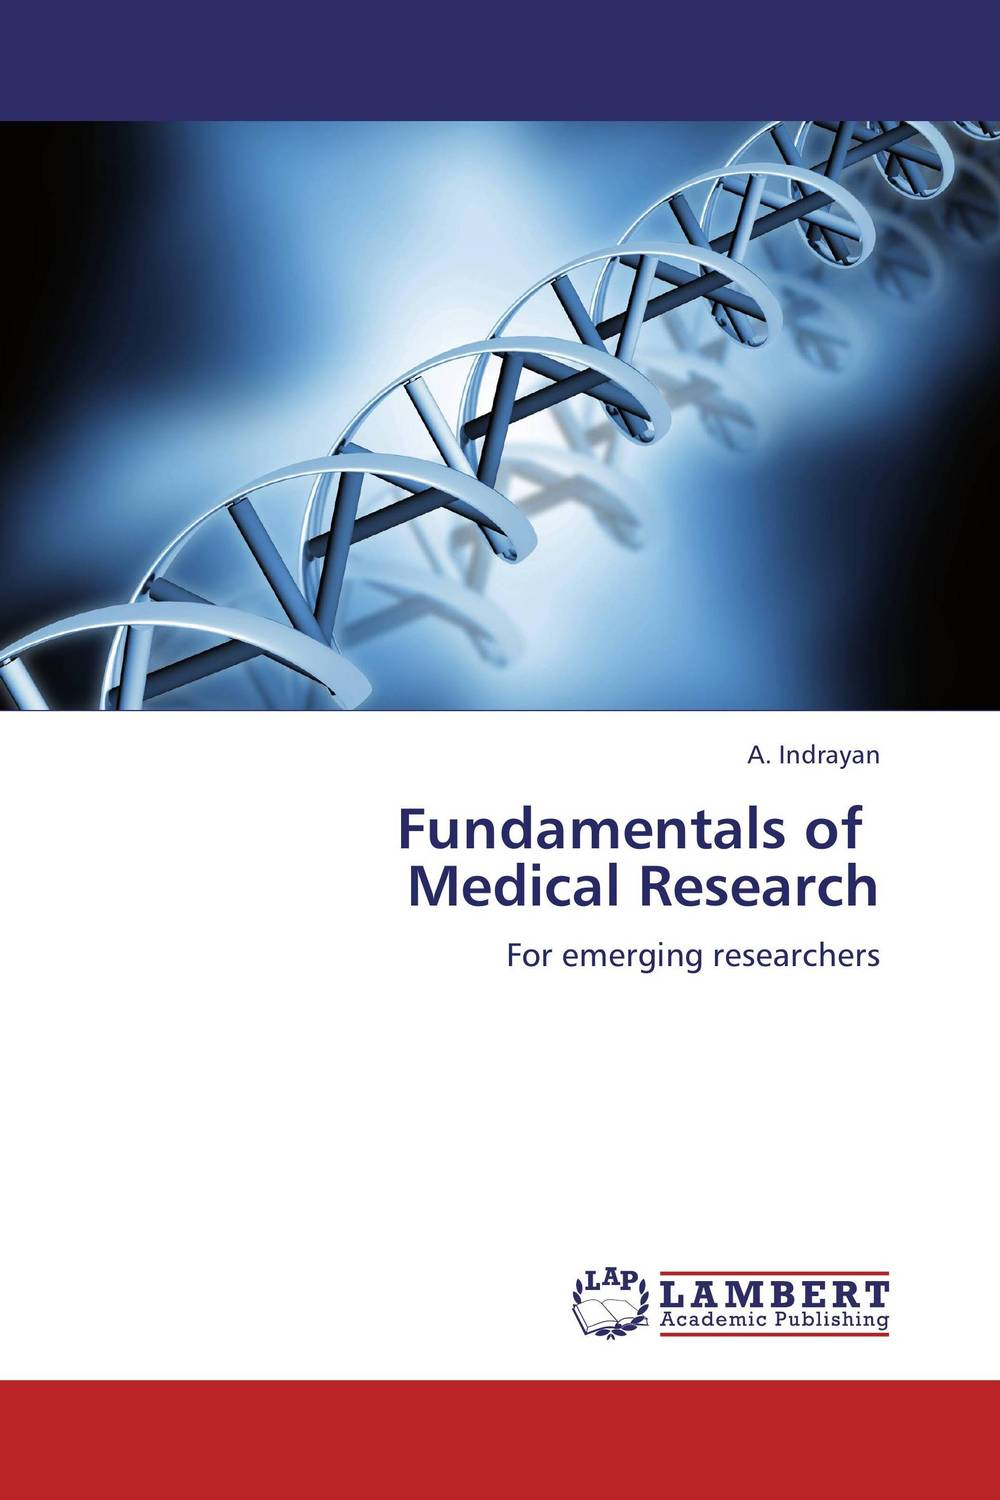 Fundamentals of Medical Research